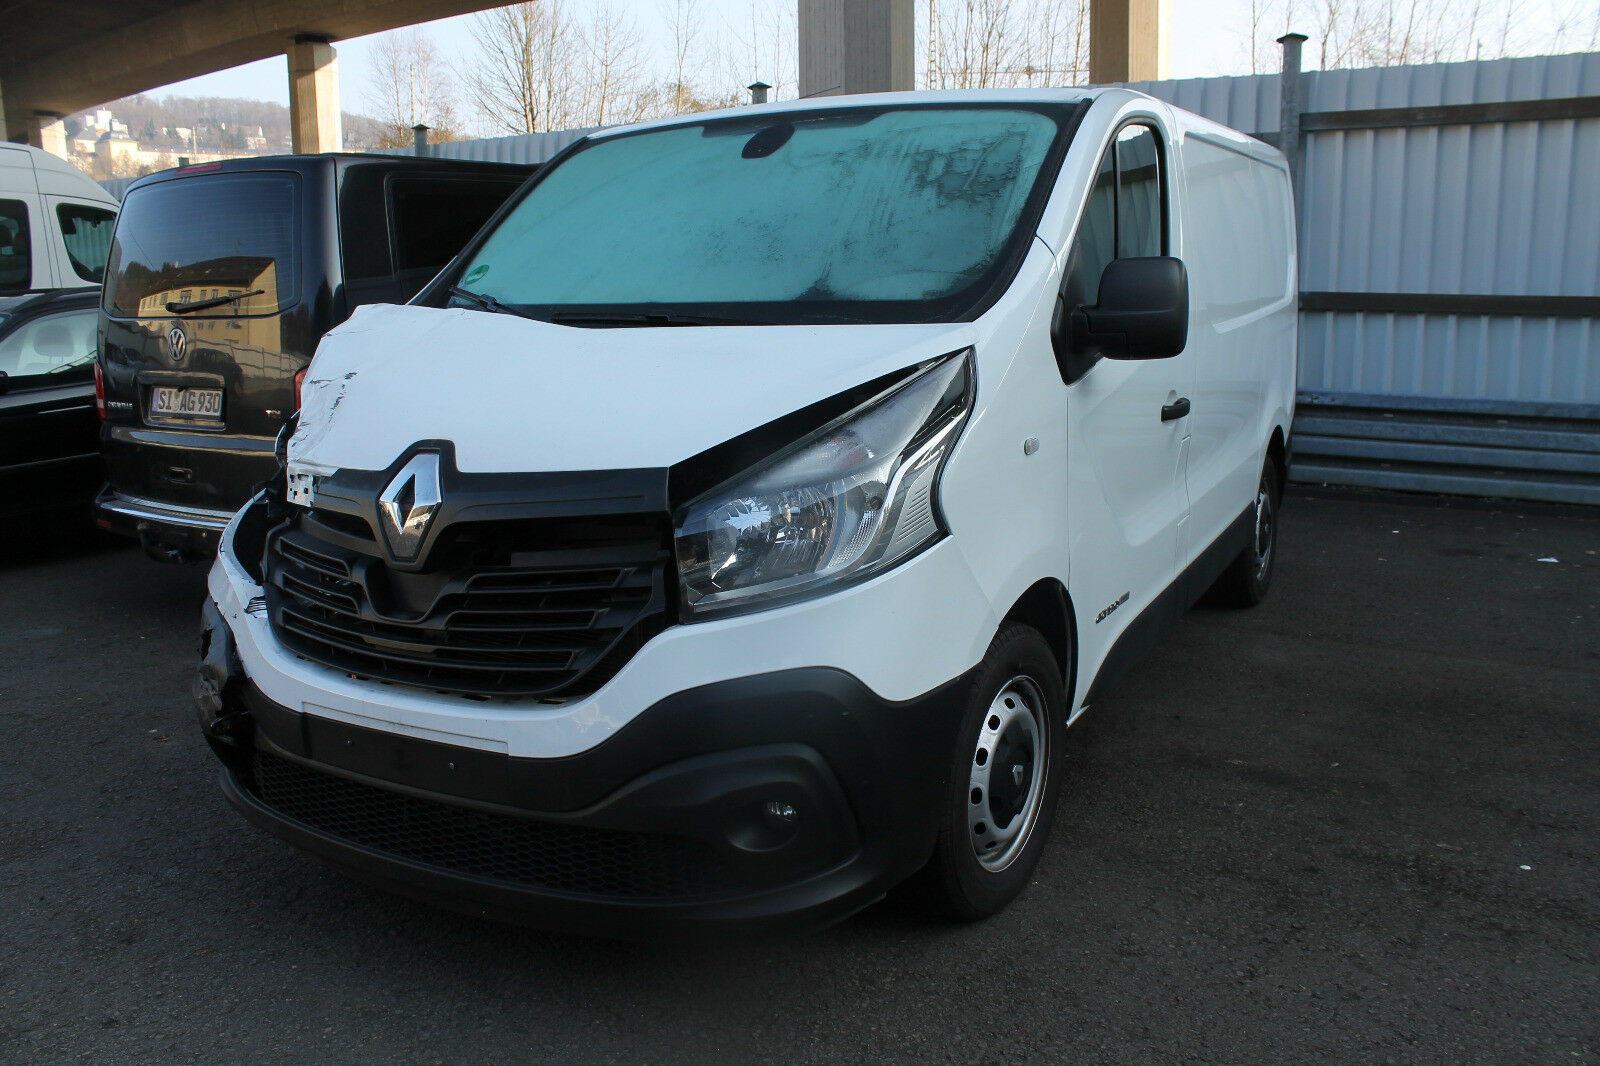 renault trafic bj 2016 unfallwagen 1 6 diesel euro 5 klima. Black Bedroom Furniture Sets. Home Design Ideas